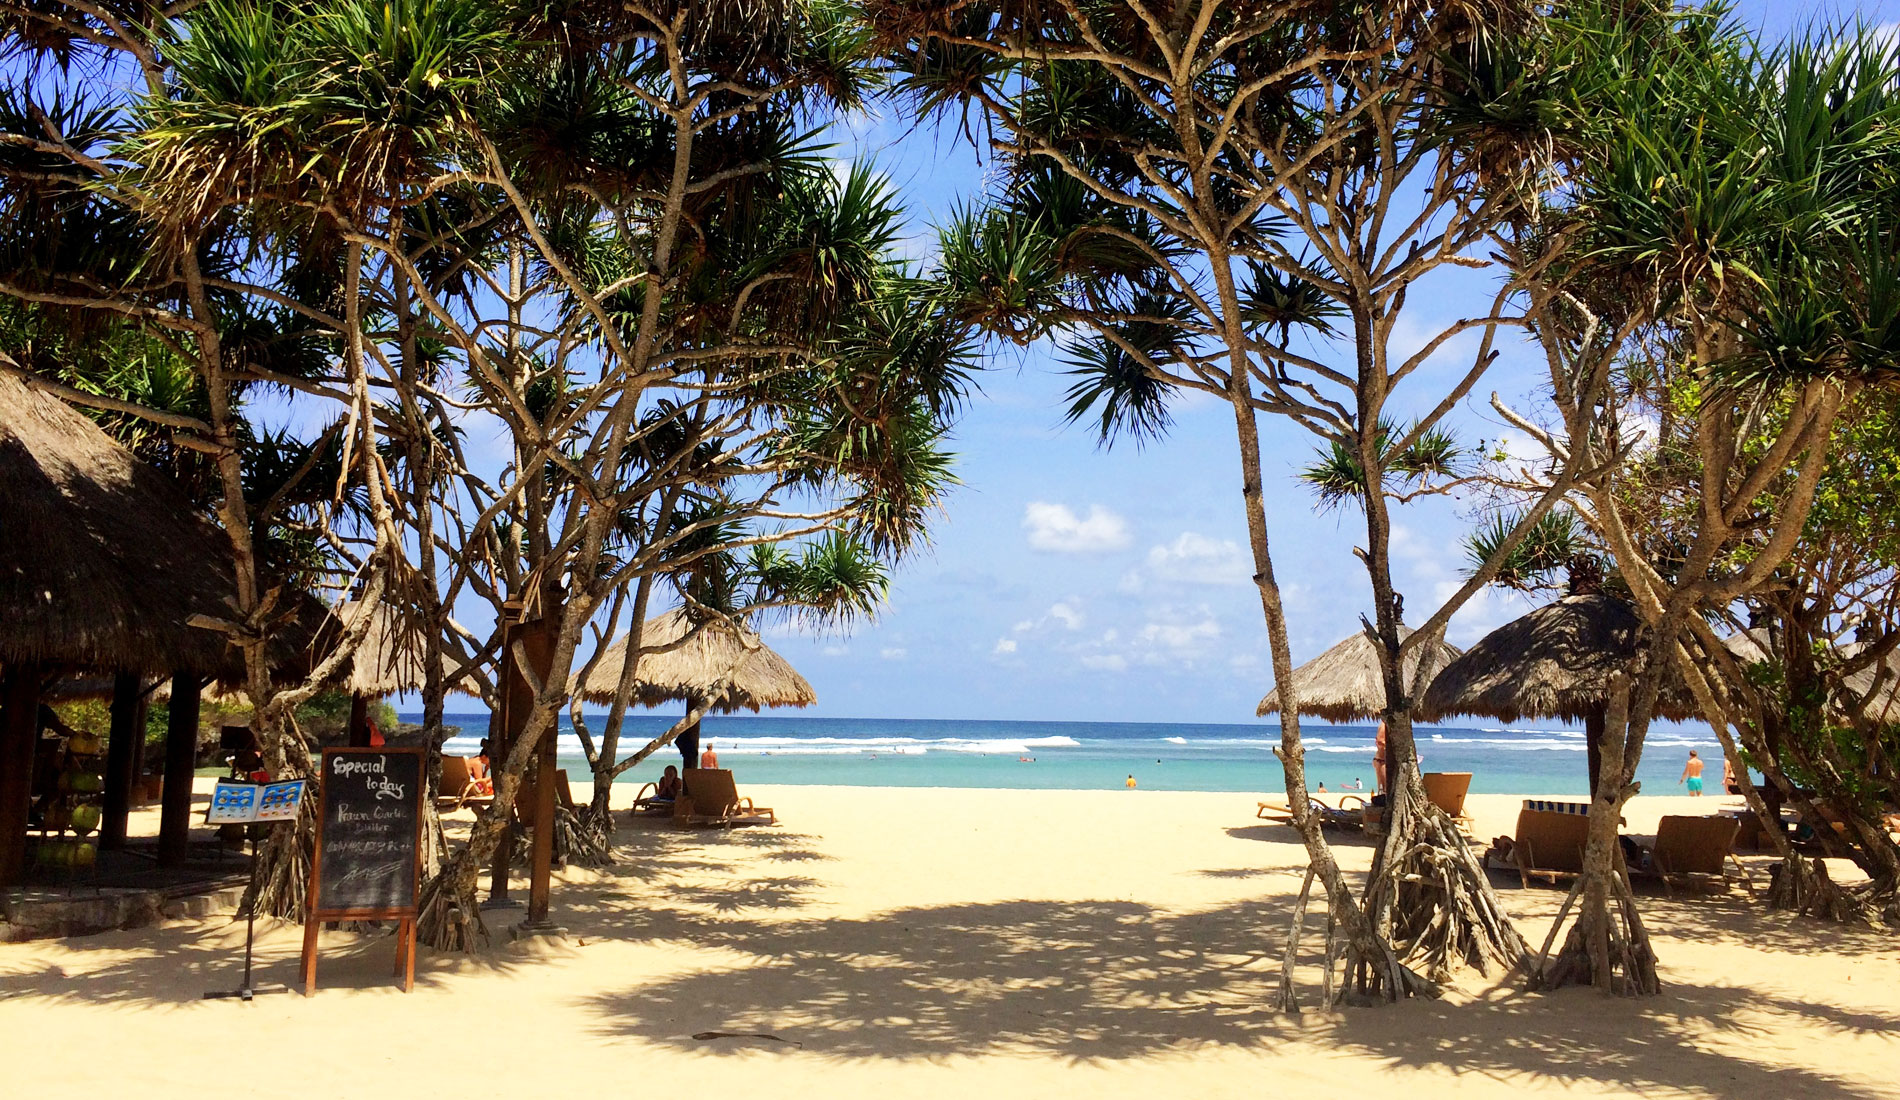 Nusa Dua Beach - Bali Tours Activities